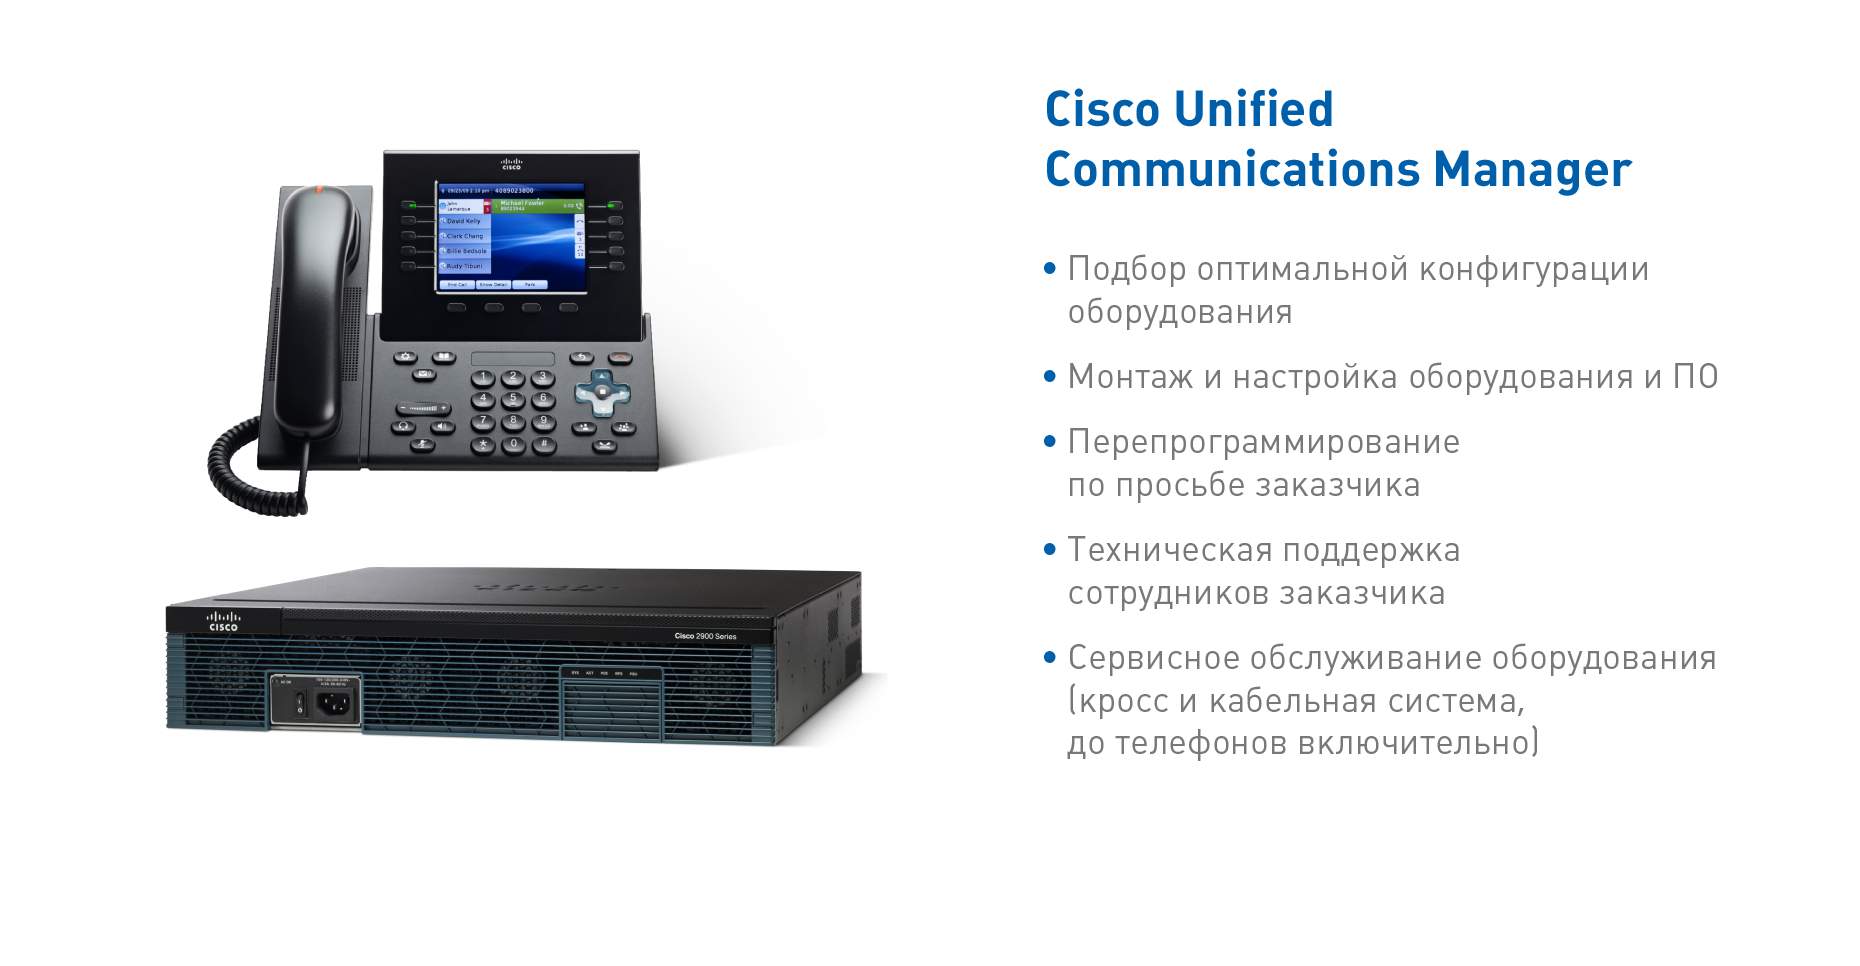 АТС и IP телефония Cisco Unified Communication manager